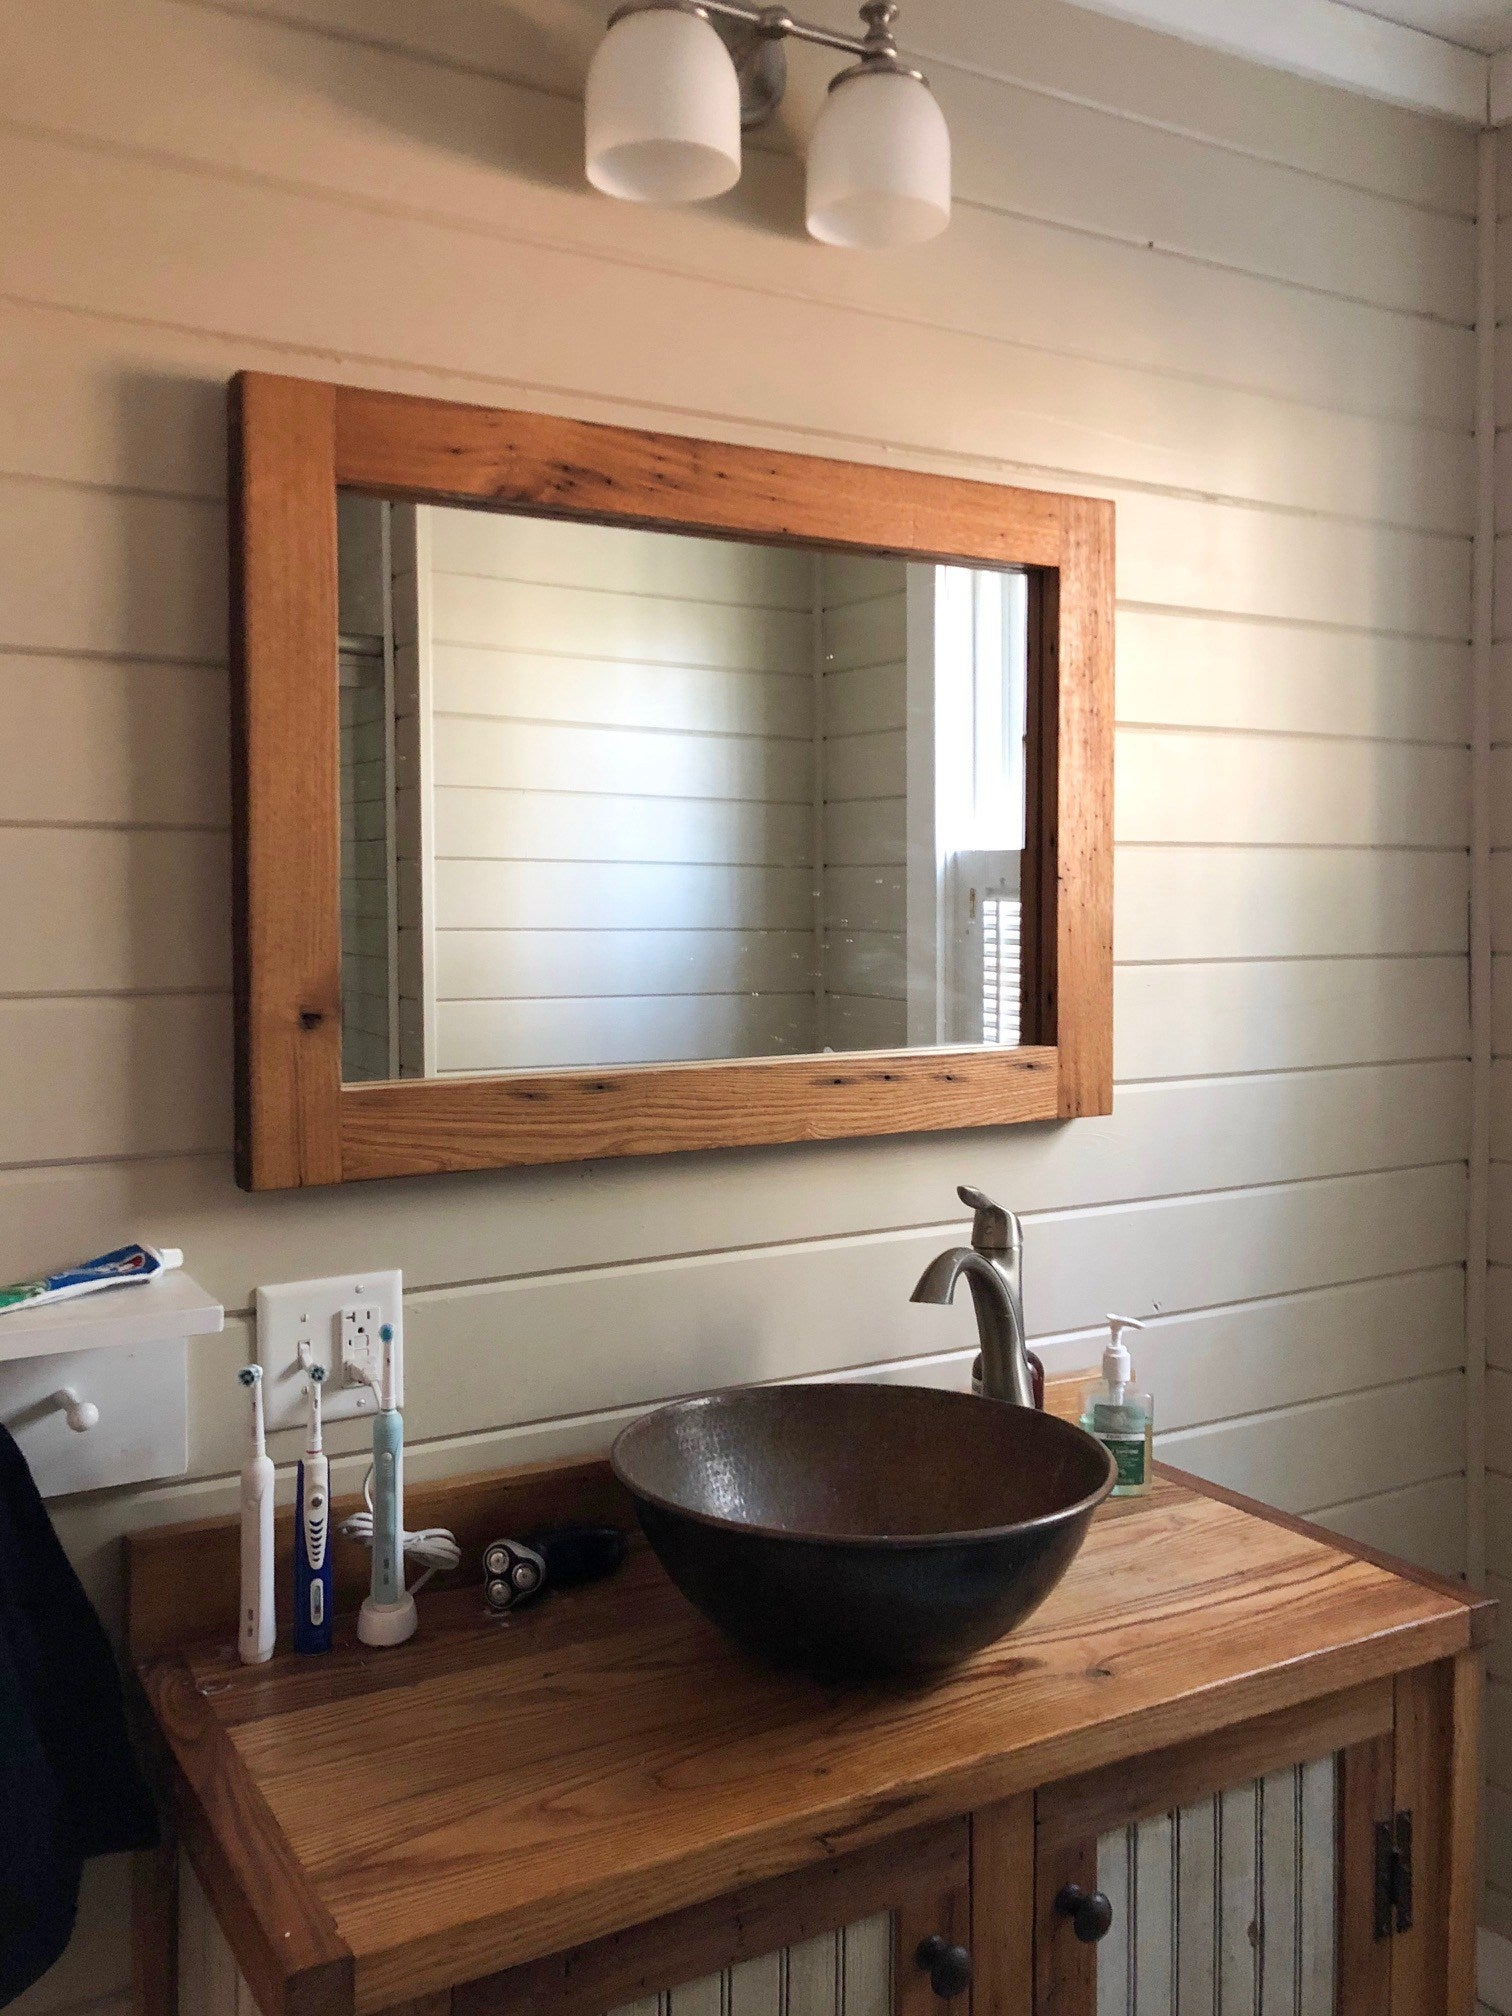 Piedmont (Pine) Bathroom | Before & After | Hygge & West